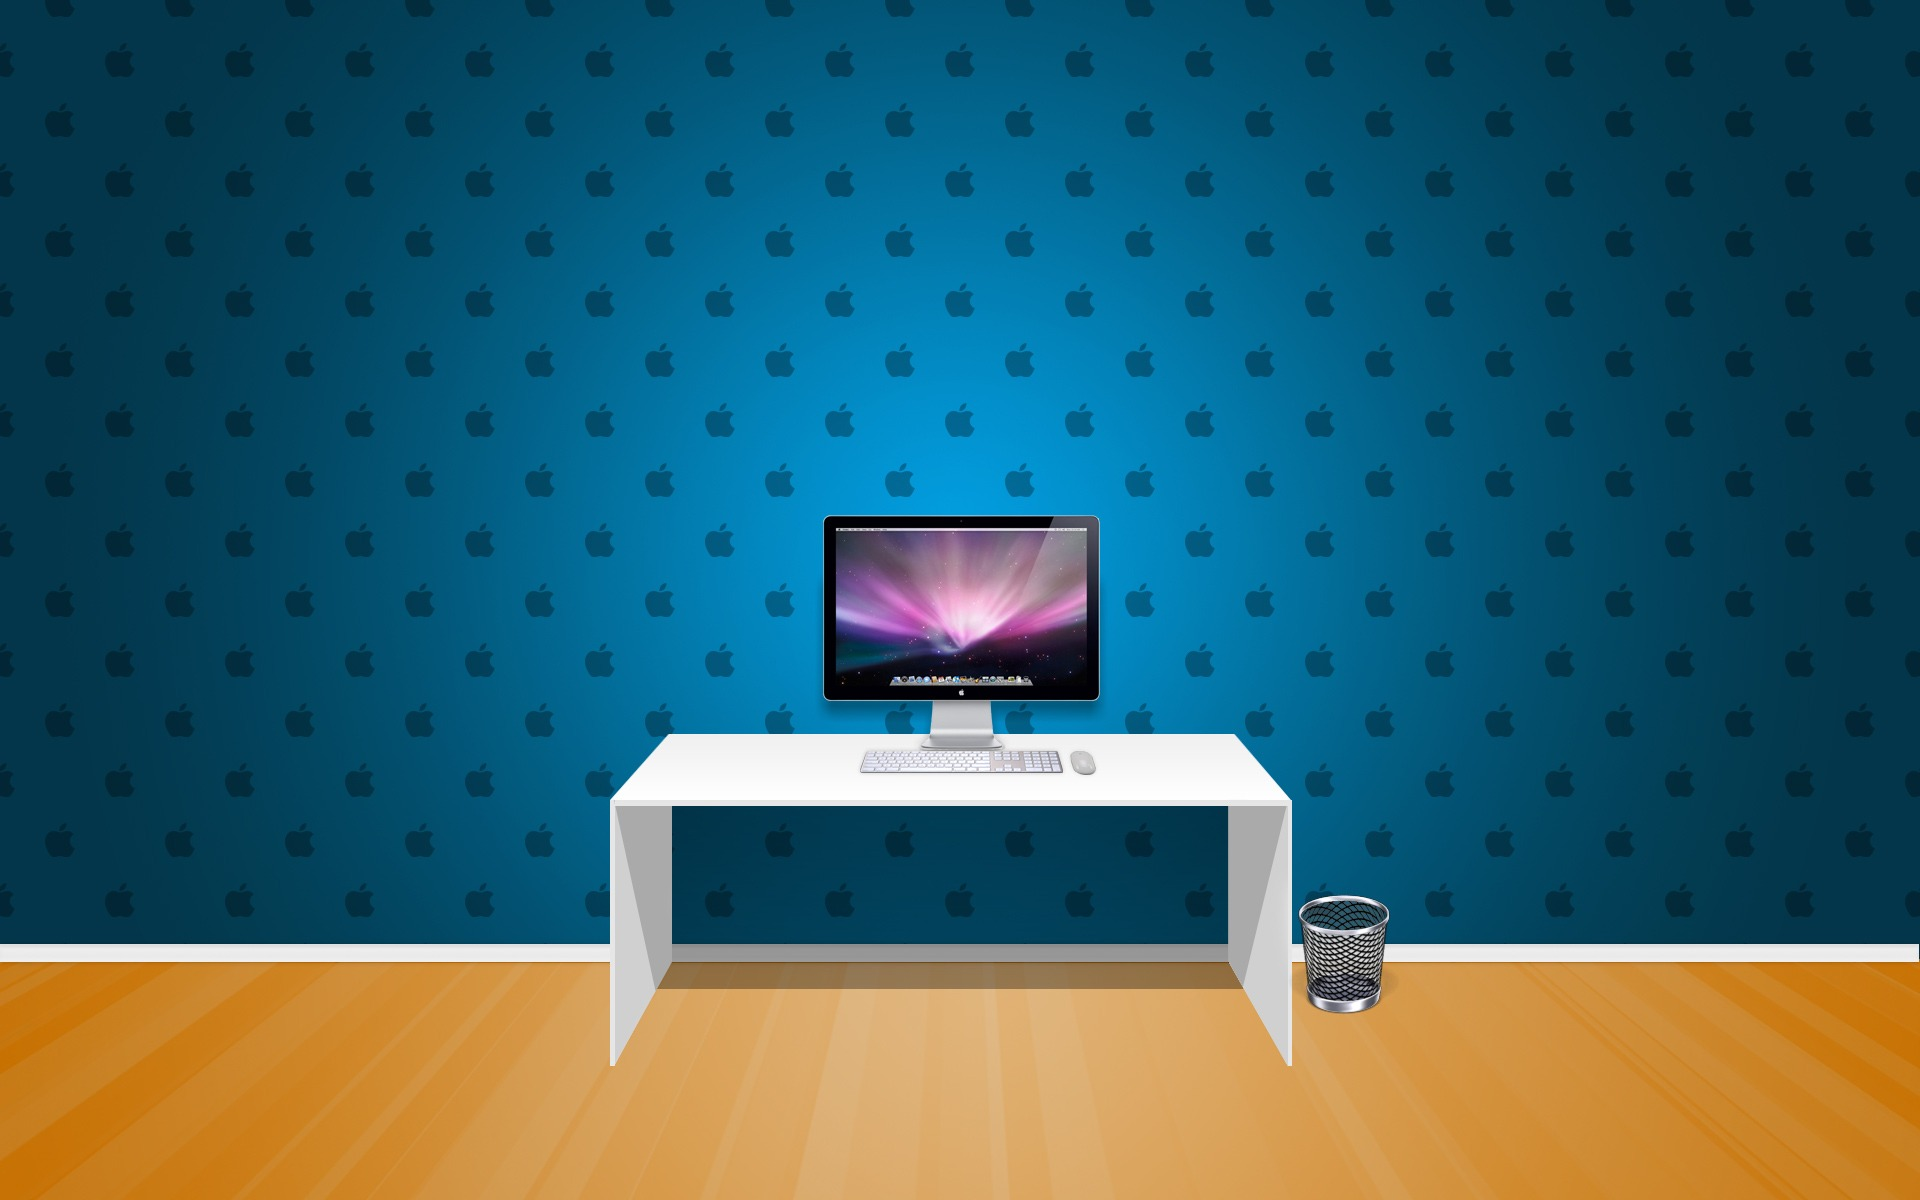 Room Wallpapers 3d wallpaper apple wallpapers for free download about (3,503